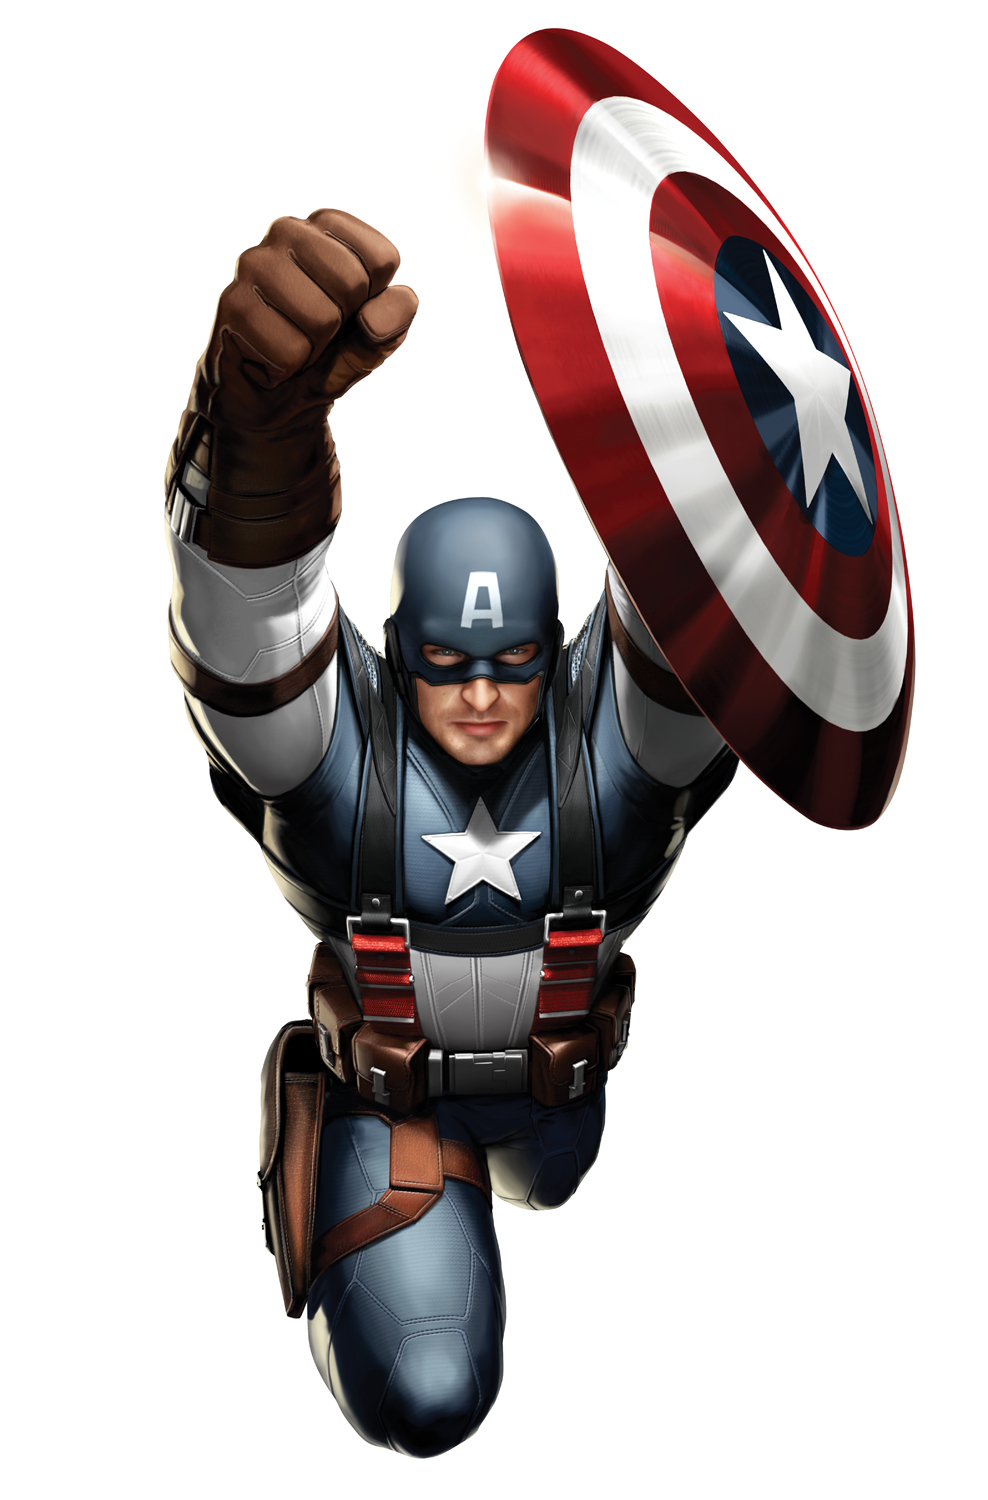 UPDATE W/ CONFIRMATION!! This Is CAPTAIN AMERICA: THE FIRST